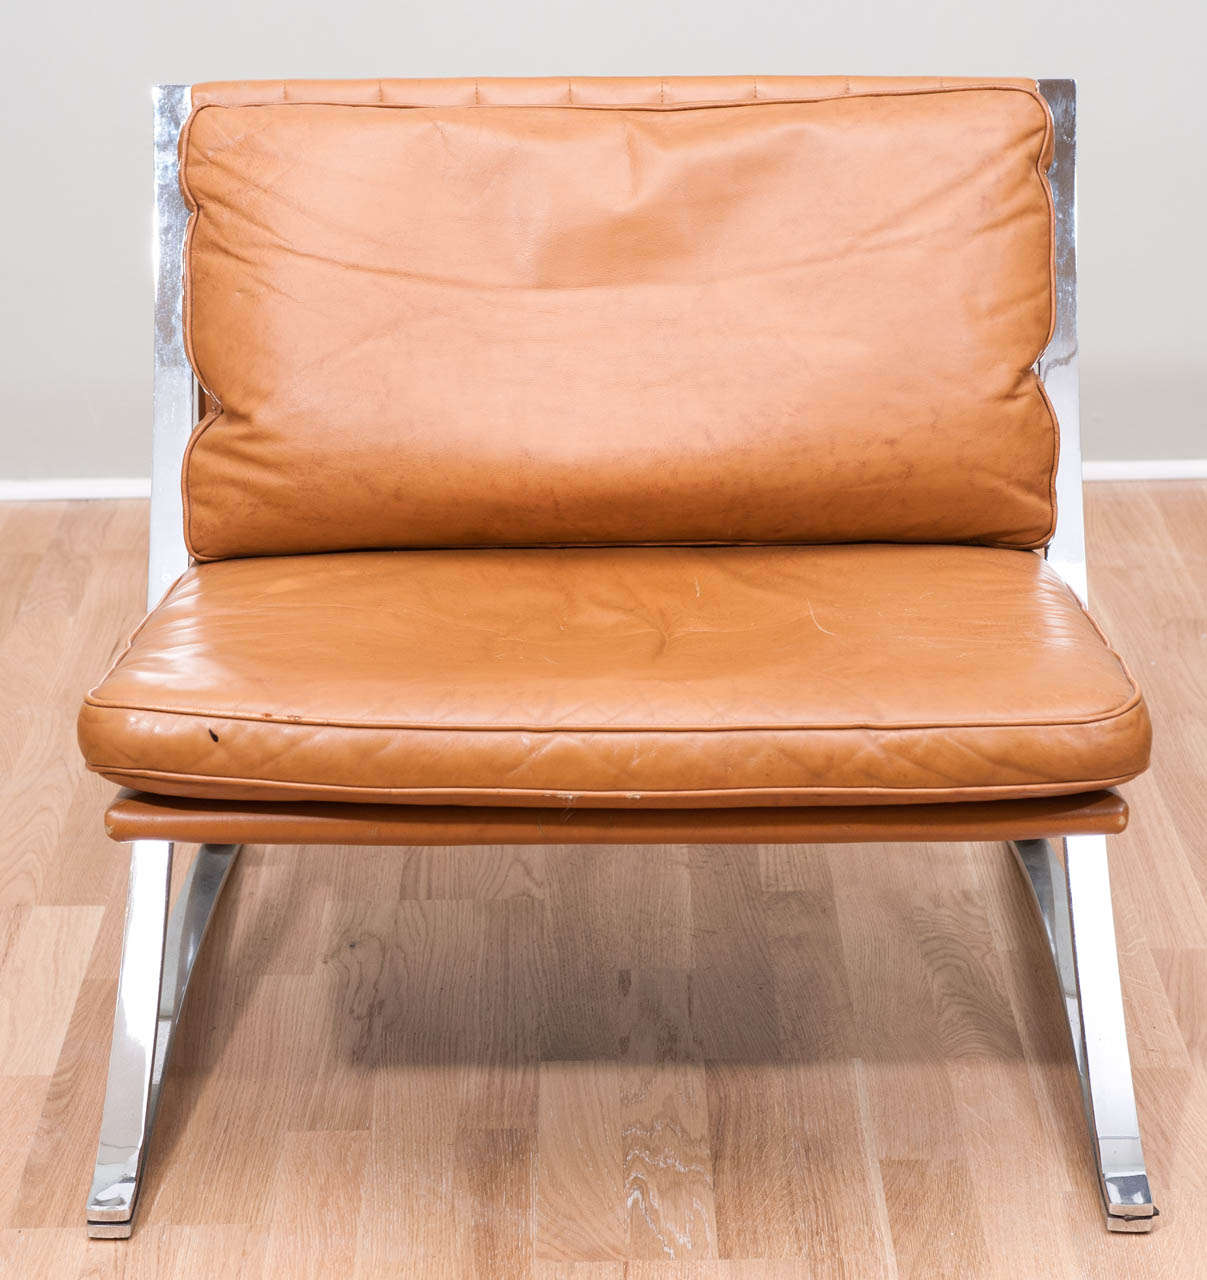 Pair of Vintage Leather Chairs In the Style of Mies van der Rohe 2